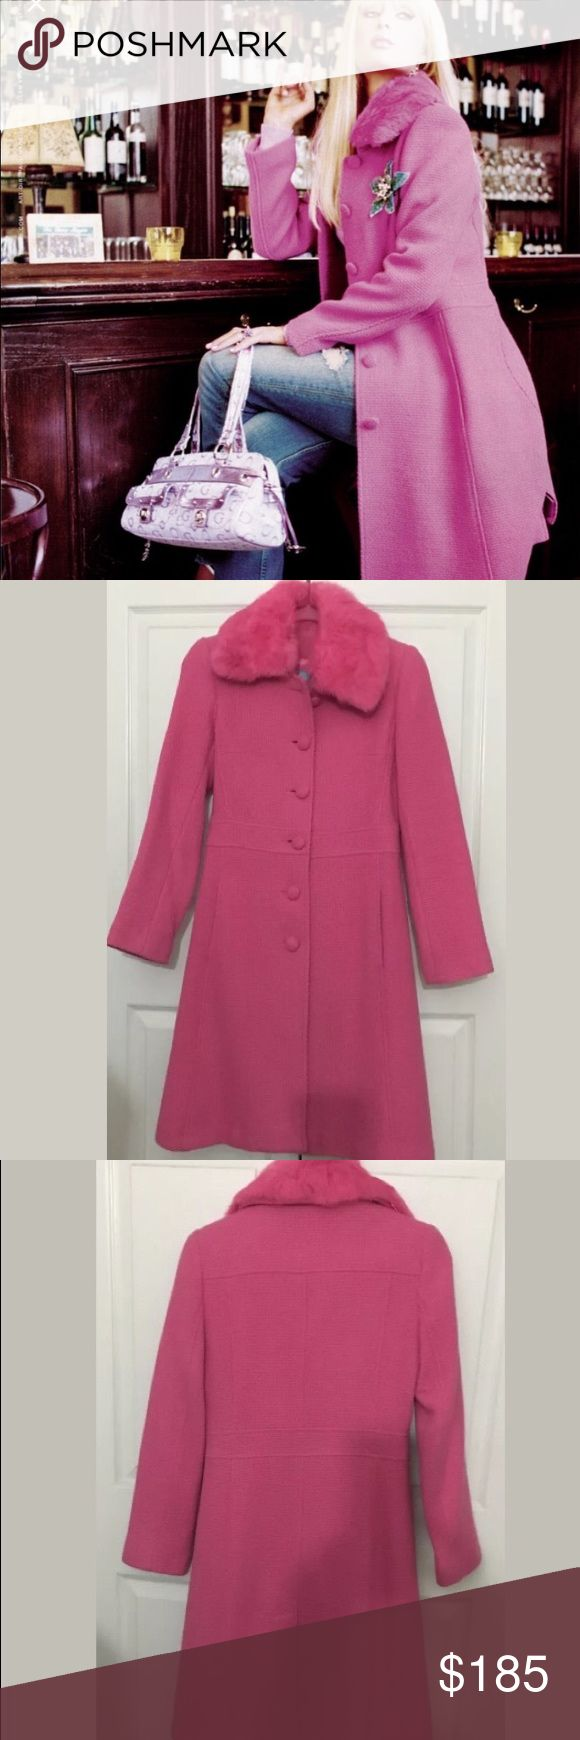 NWOT Marciano Pink Wool Coat ASO Paris Hilton XS Gorgeous pink wool long coat with pink fur neck trim. Same exact one seen on the ad Paris Hilton is shown wearing. This coat is brand new without tags size is XS. Marciano Jackets & Coats